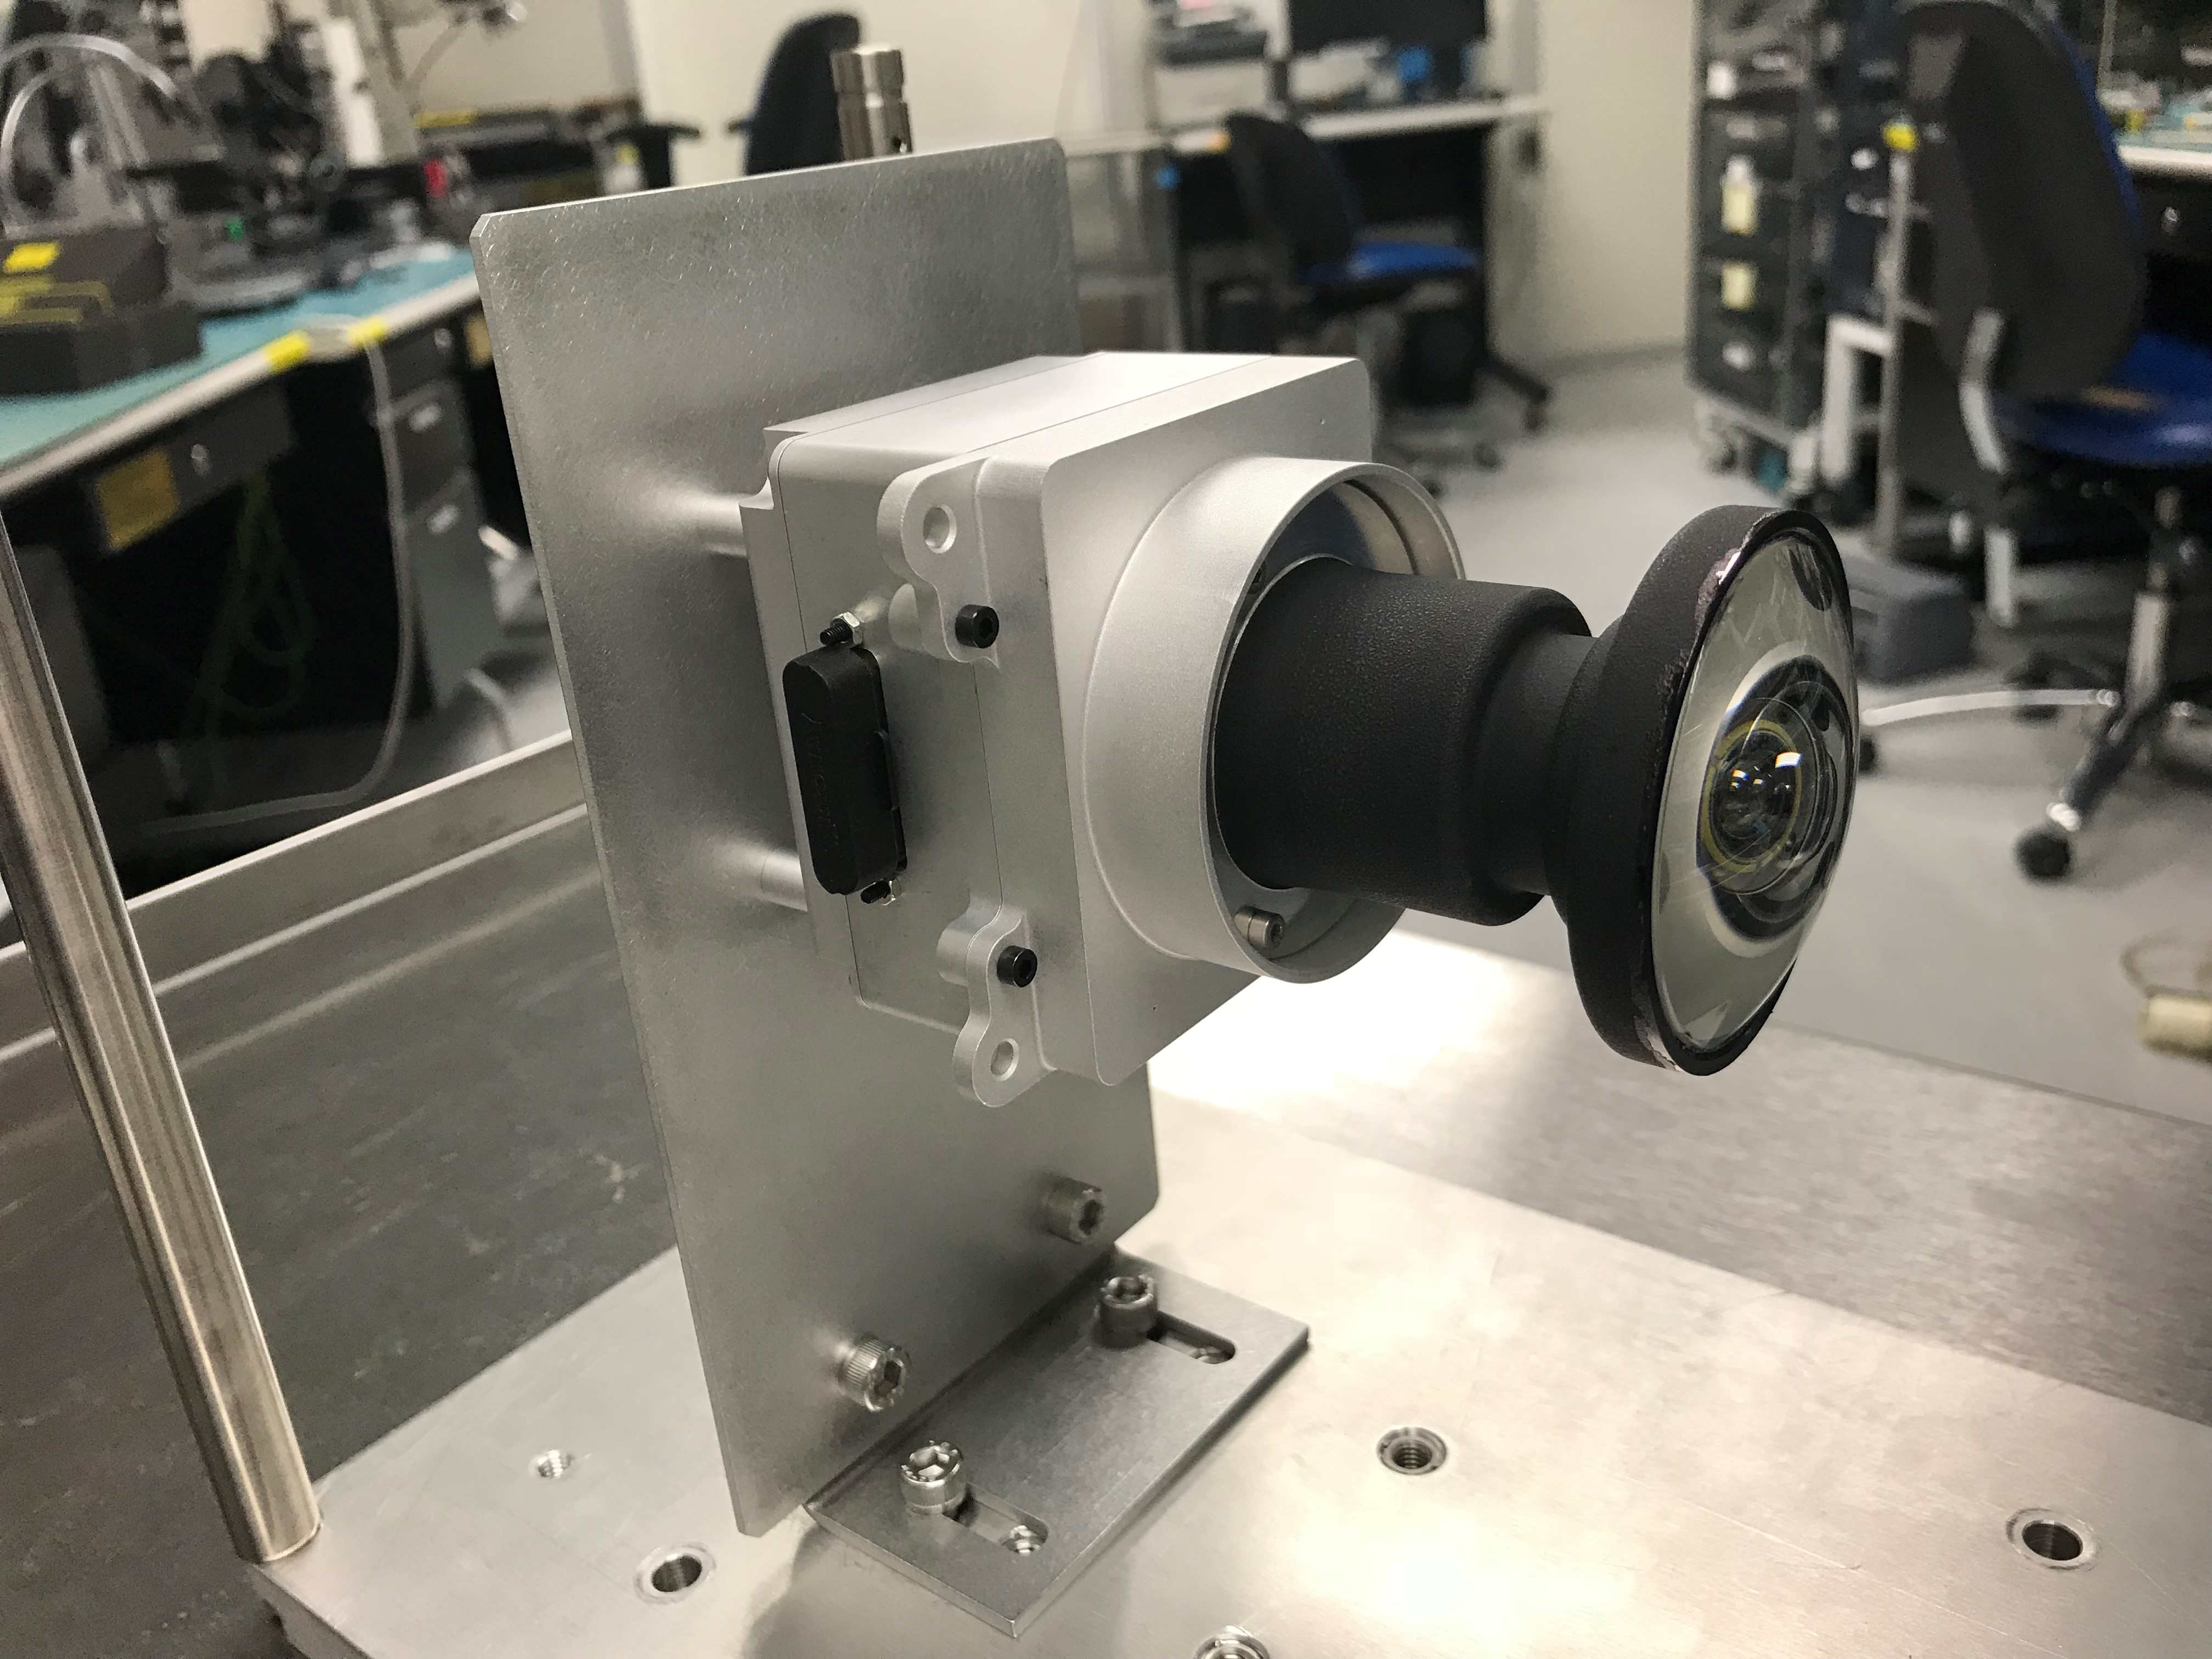 One of the enhanced engineering cameras with a prototype lens for the Hazcams, which will watch for obstacles encountered by the Mars 2020 rover.